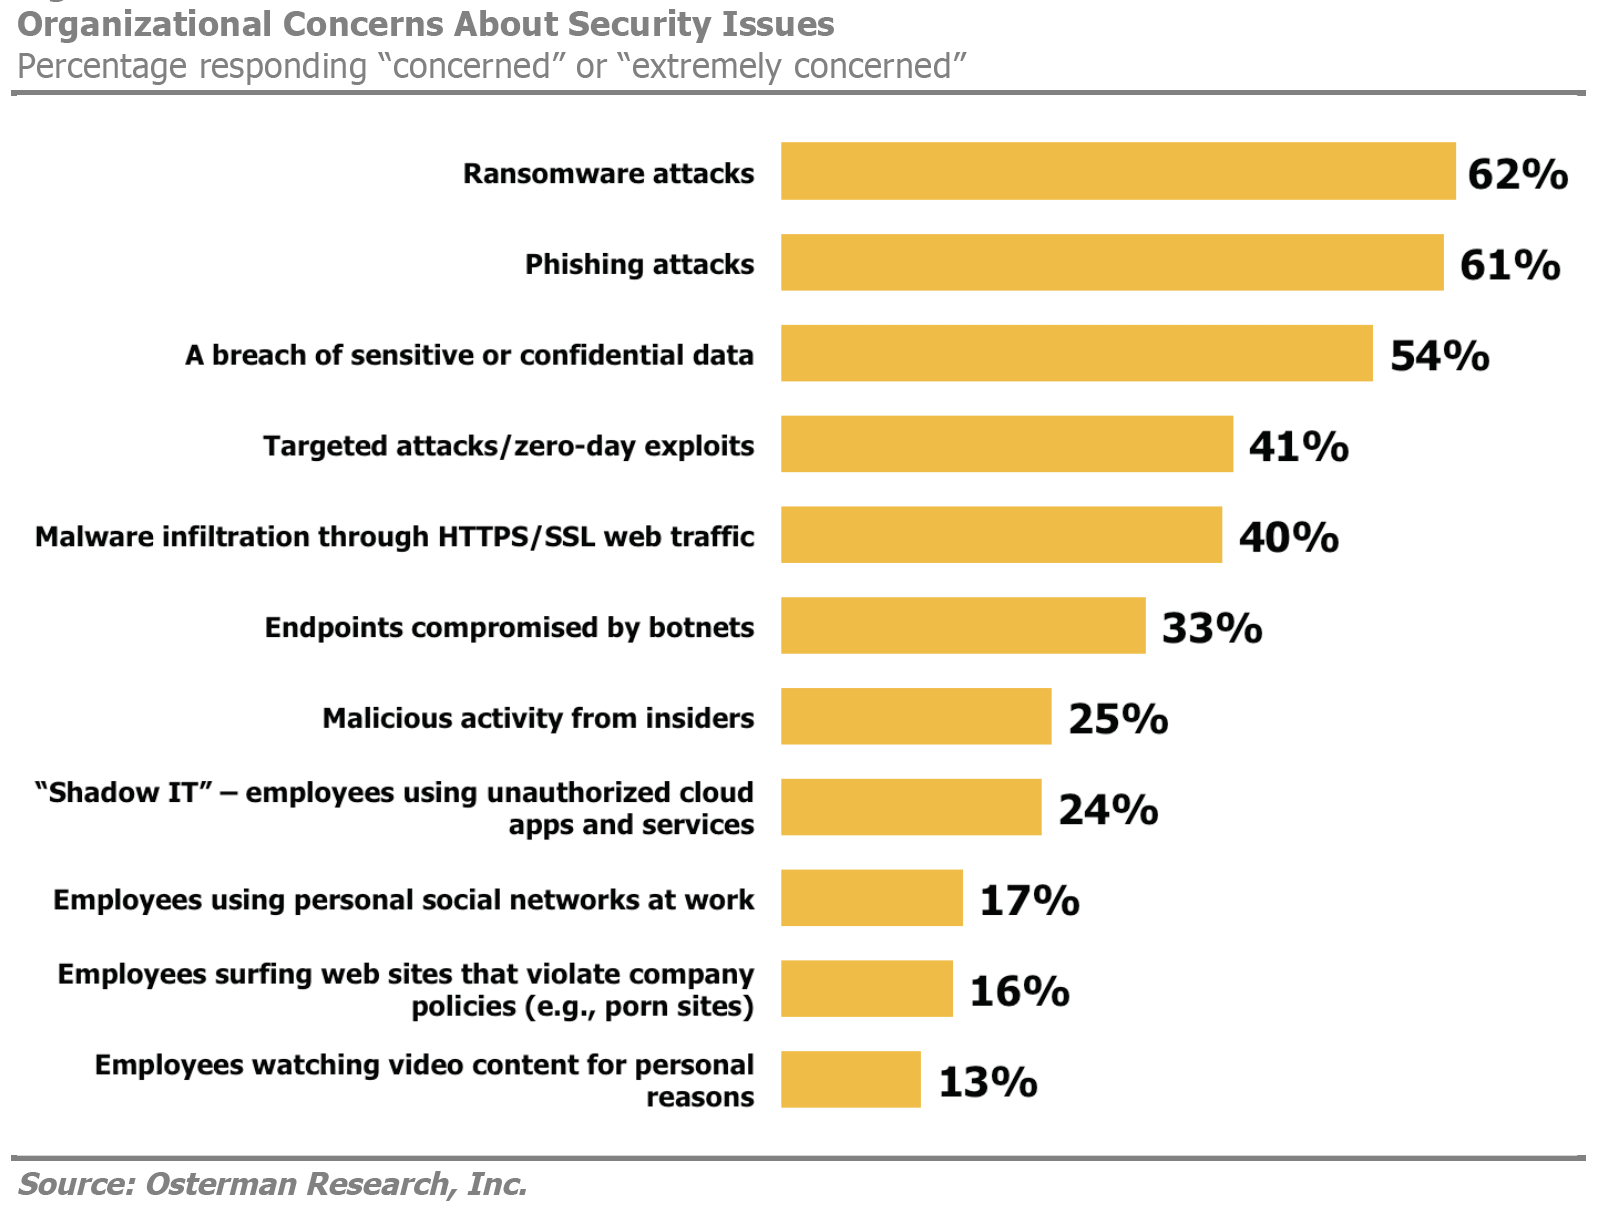 New Survey: IT Security Spending Is Up, But Security Is Not, Ransomware Is The Biggest Worry